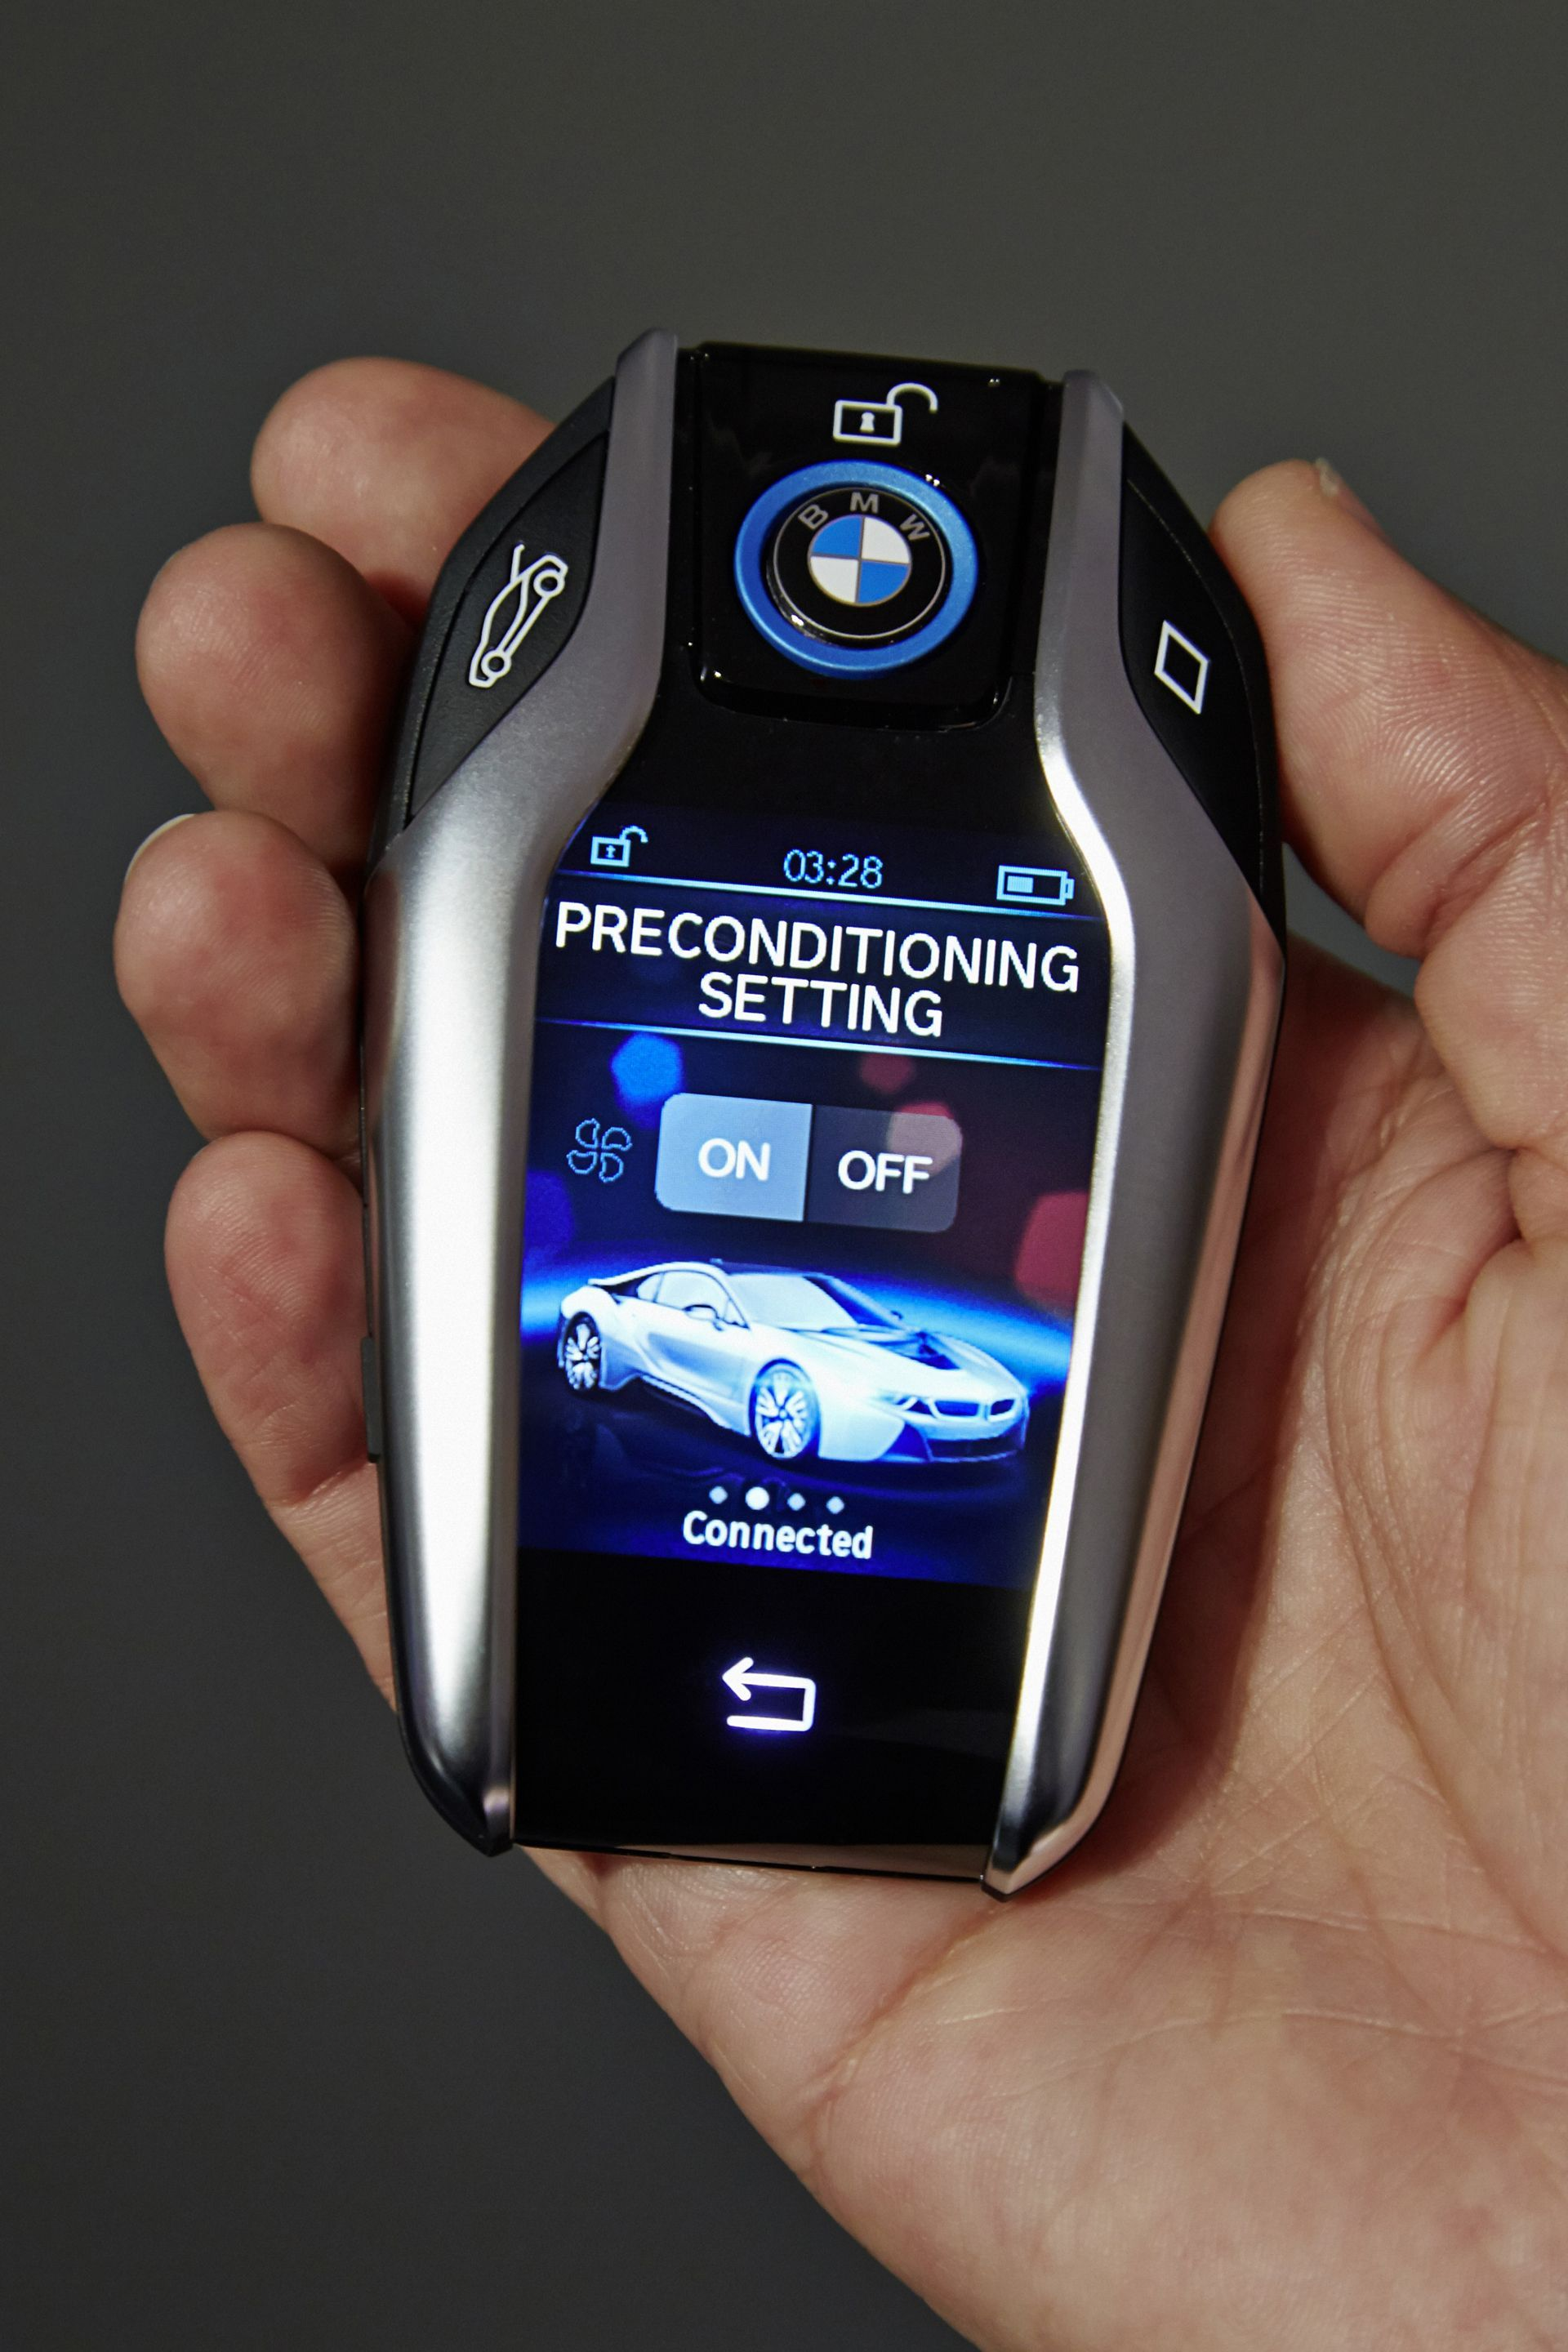 The New Bmw Key Fob With Display This Has To Be The Most Advanced